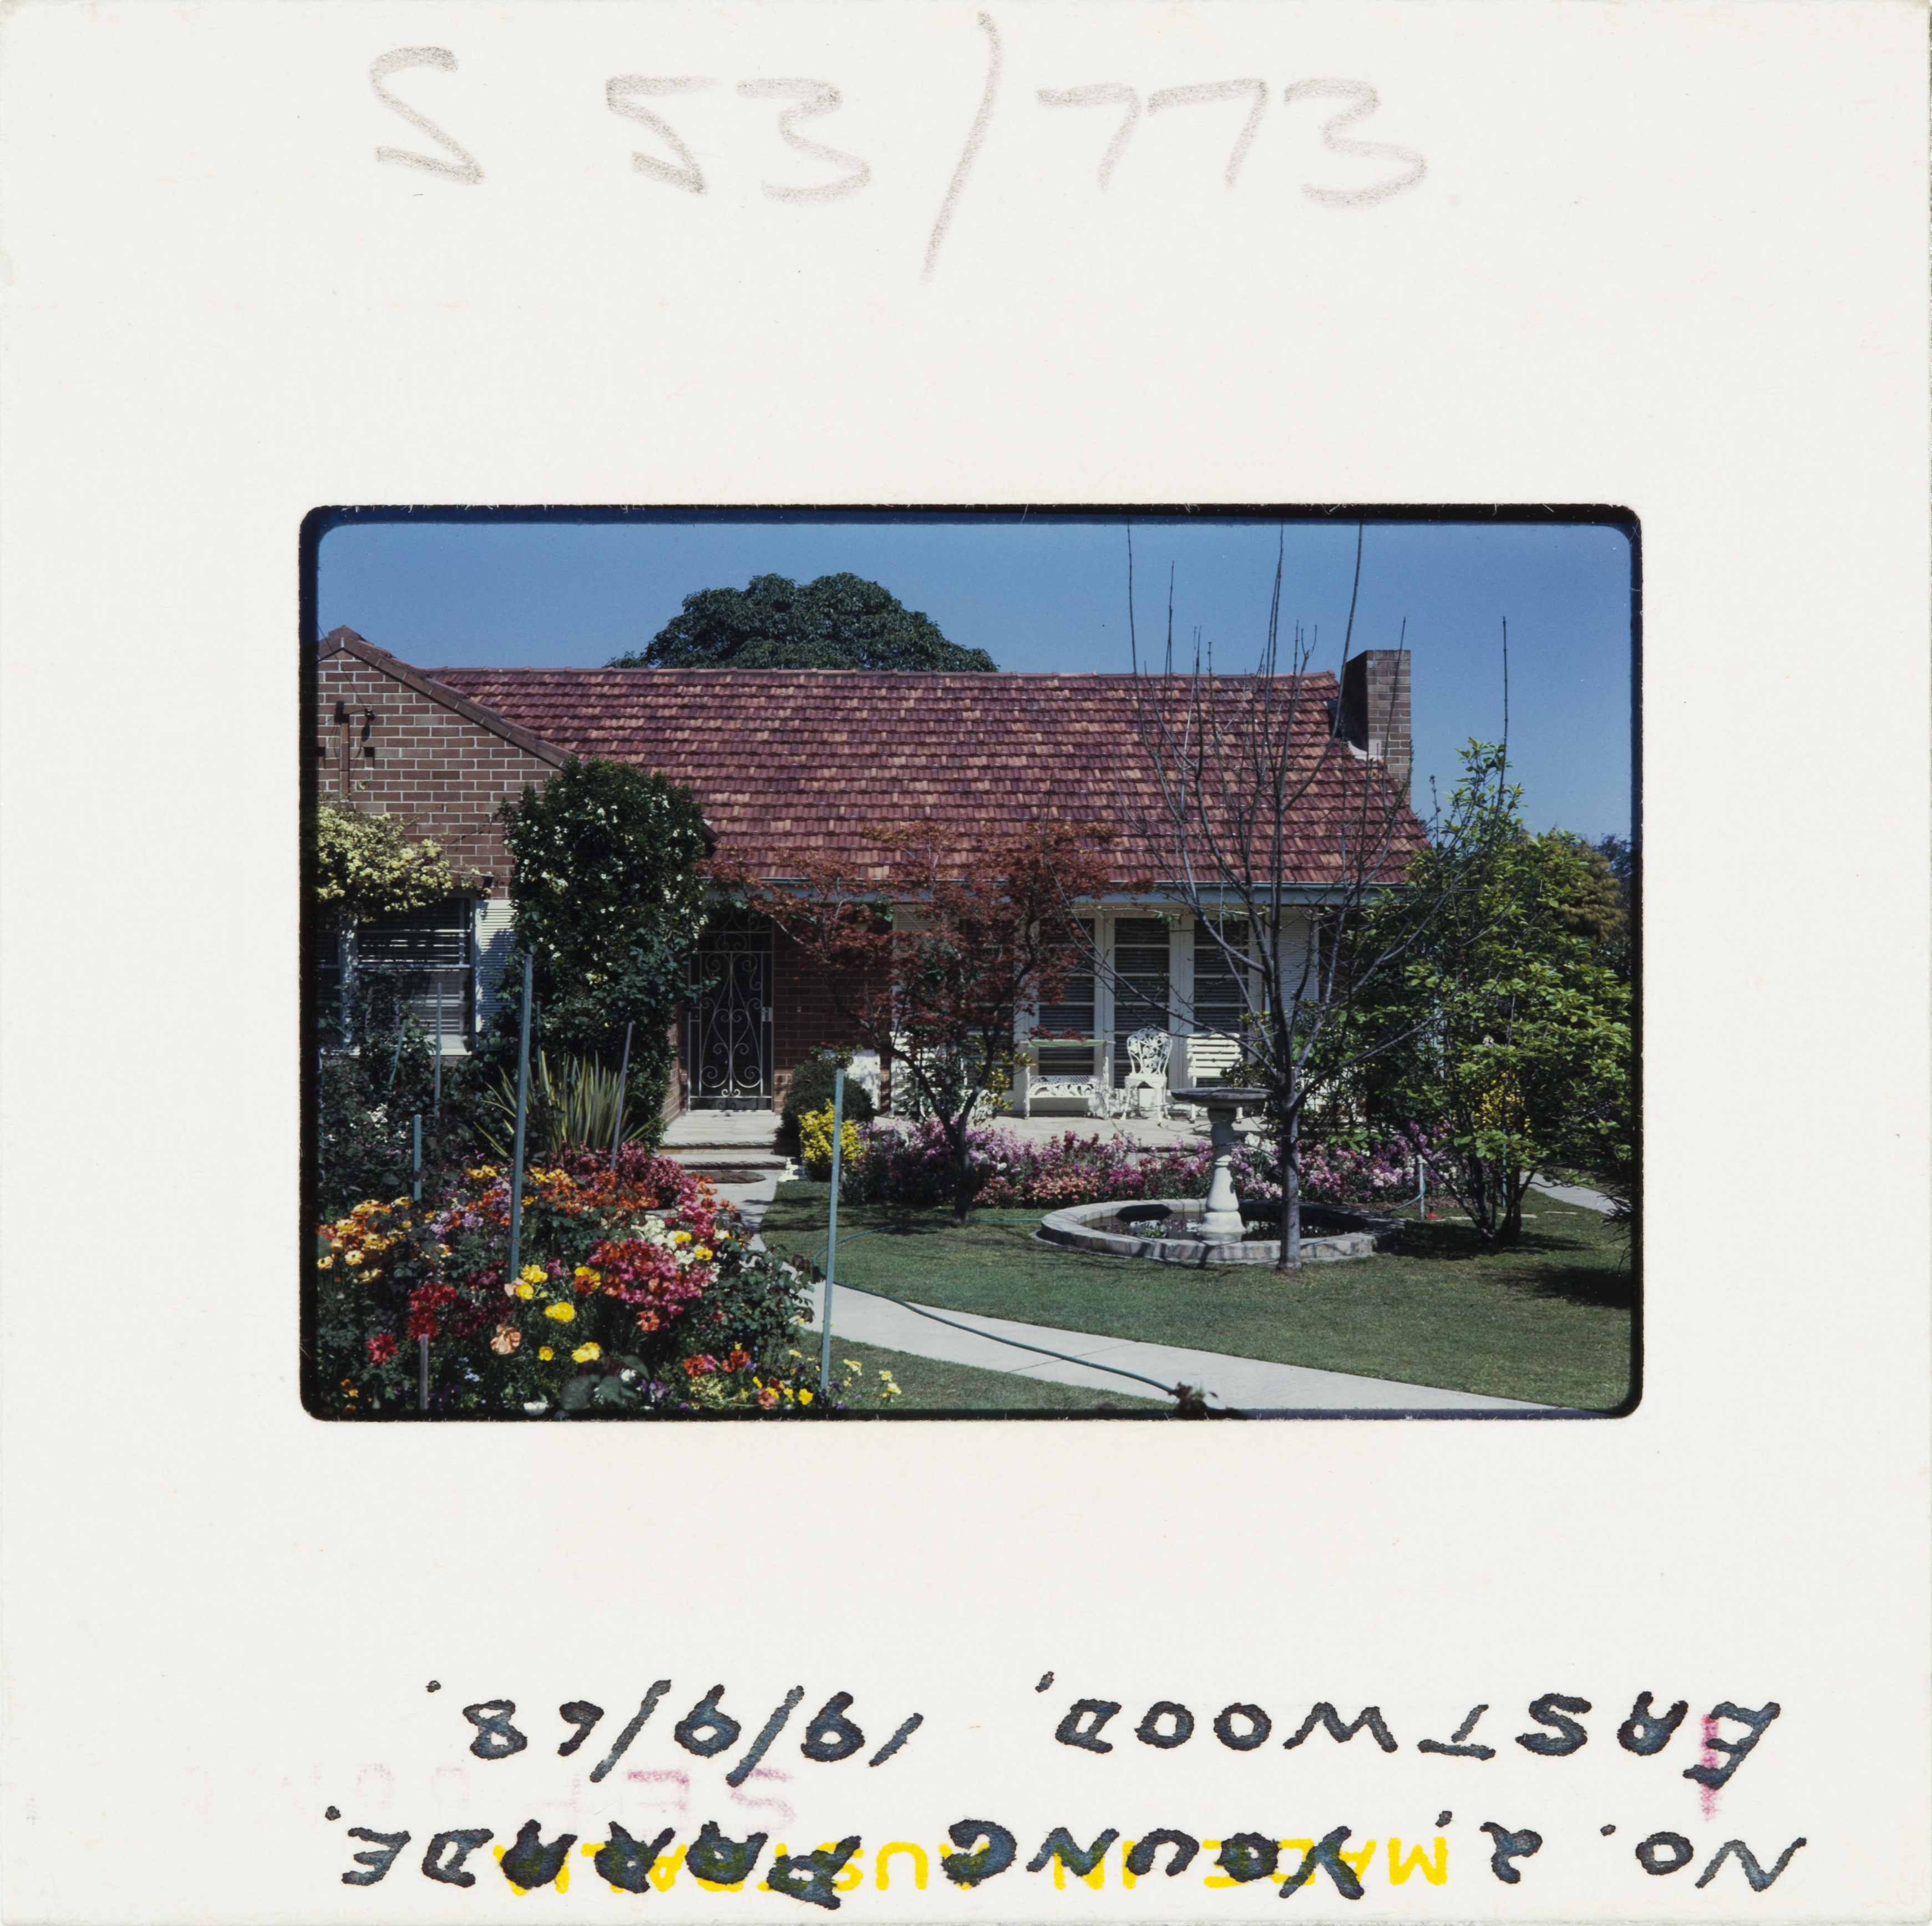 A 60s Kodak colour slide of a suburban brick home with colourful front garden in full flower.